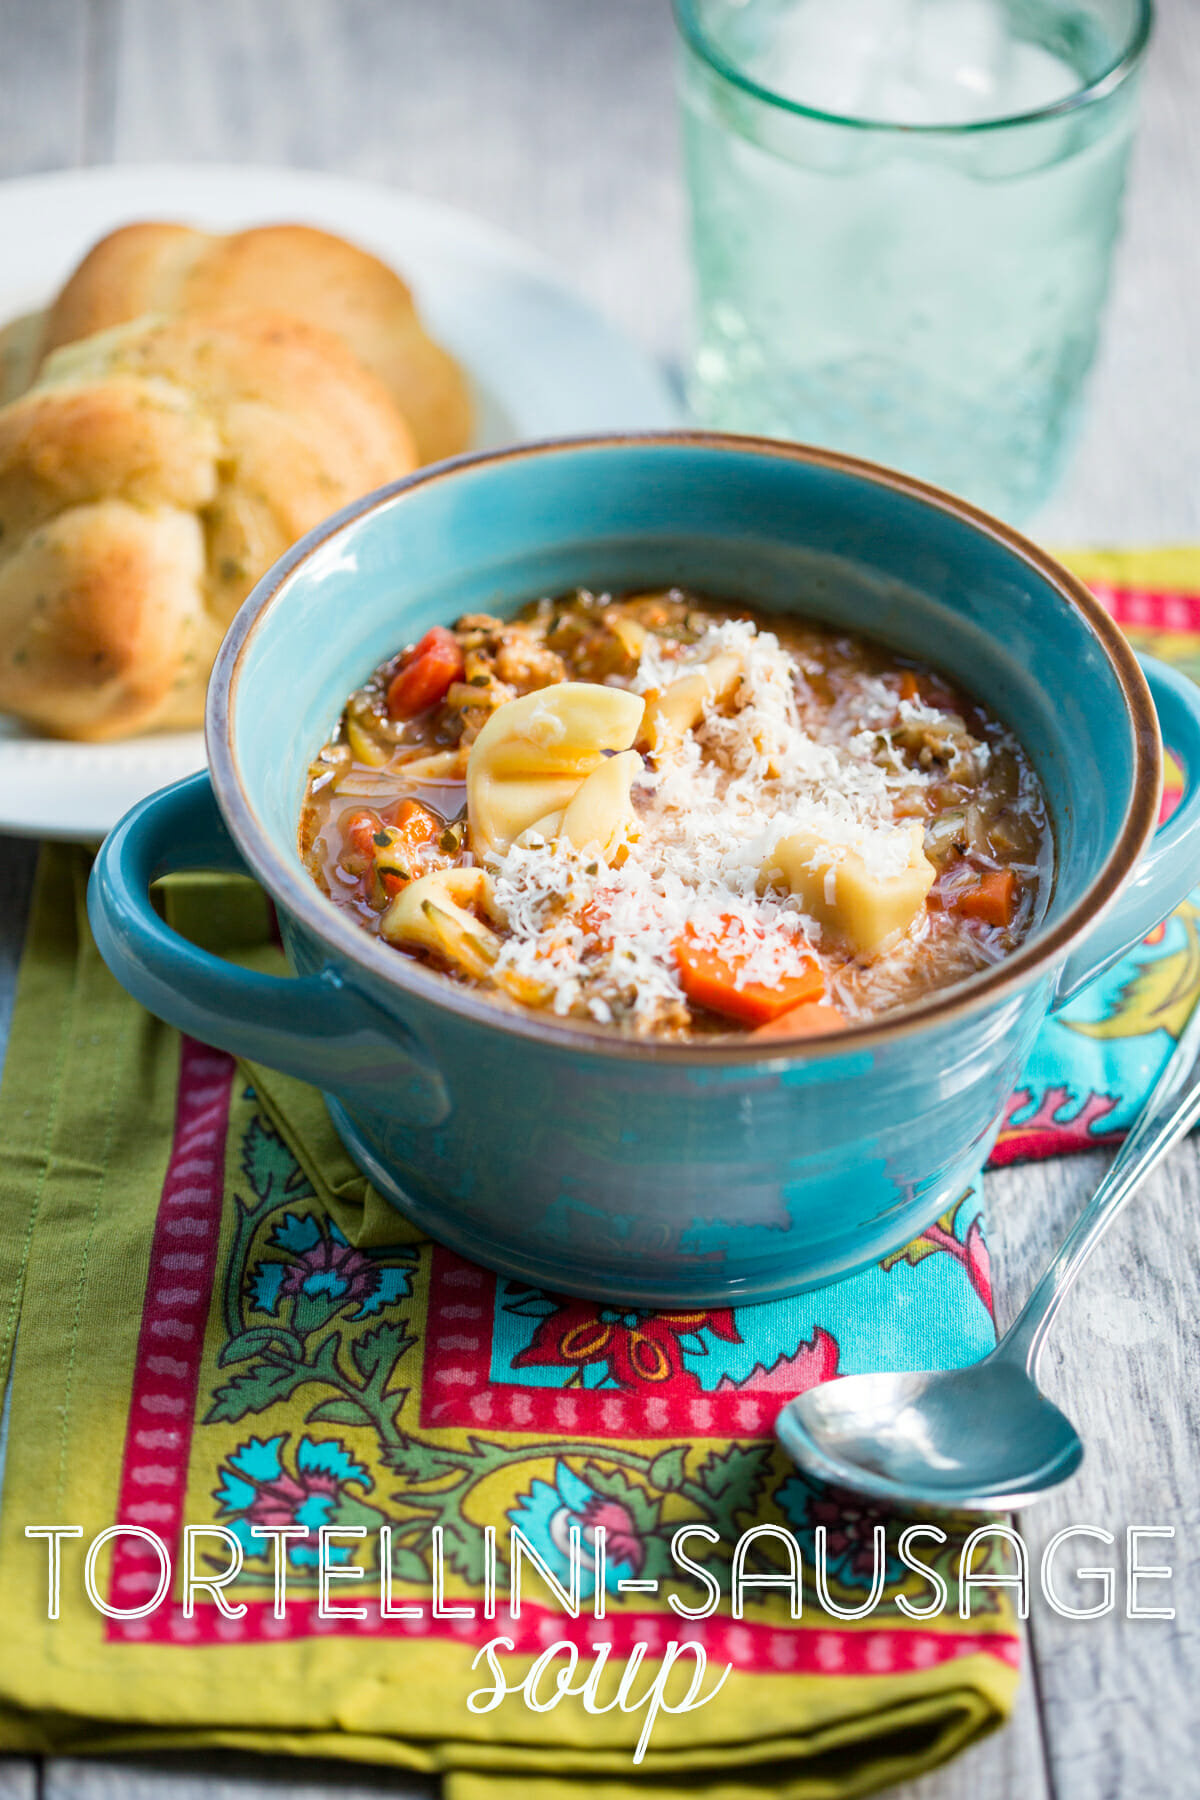 Hearty and satisfying, this tortellini sausage soup is one of our all-time favorite recipes!